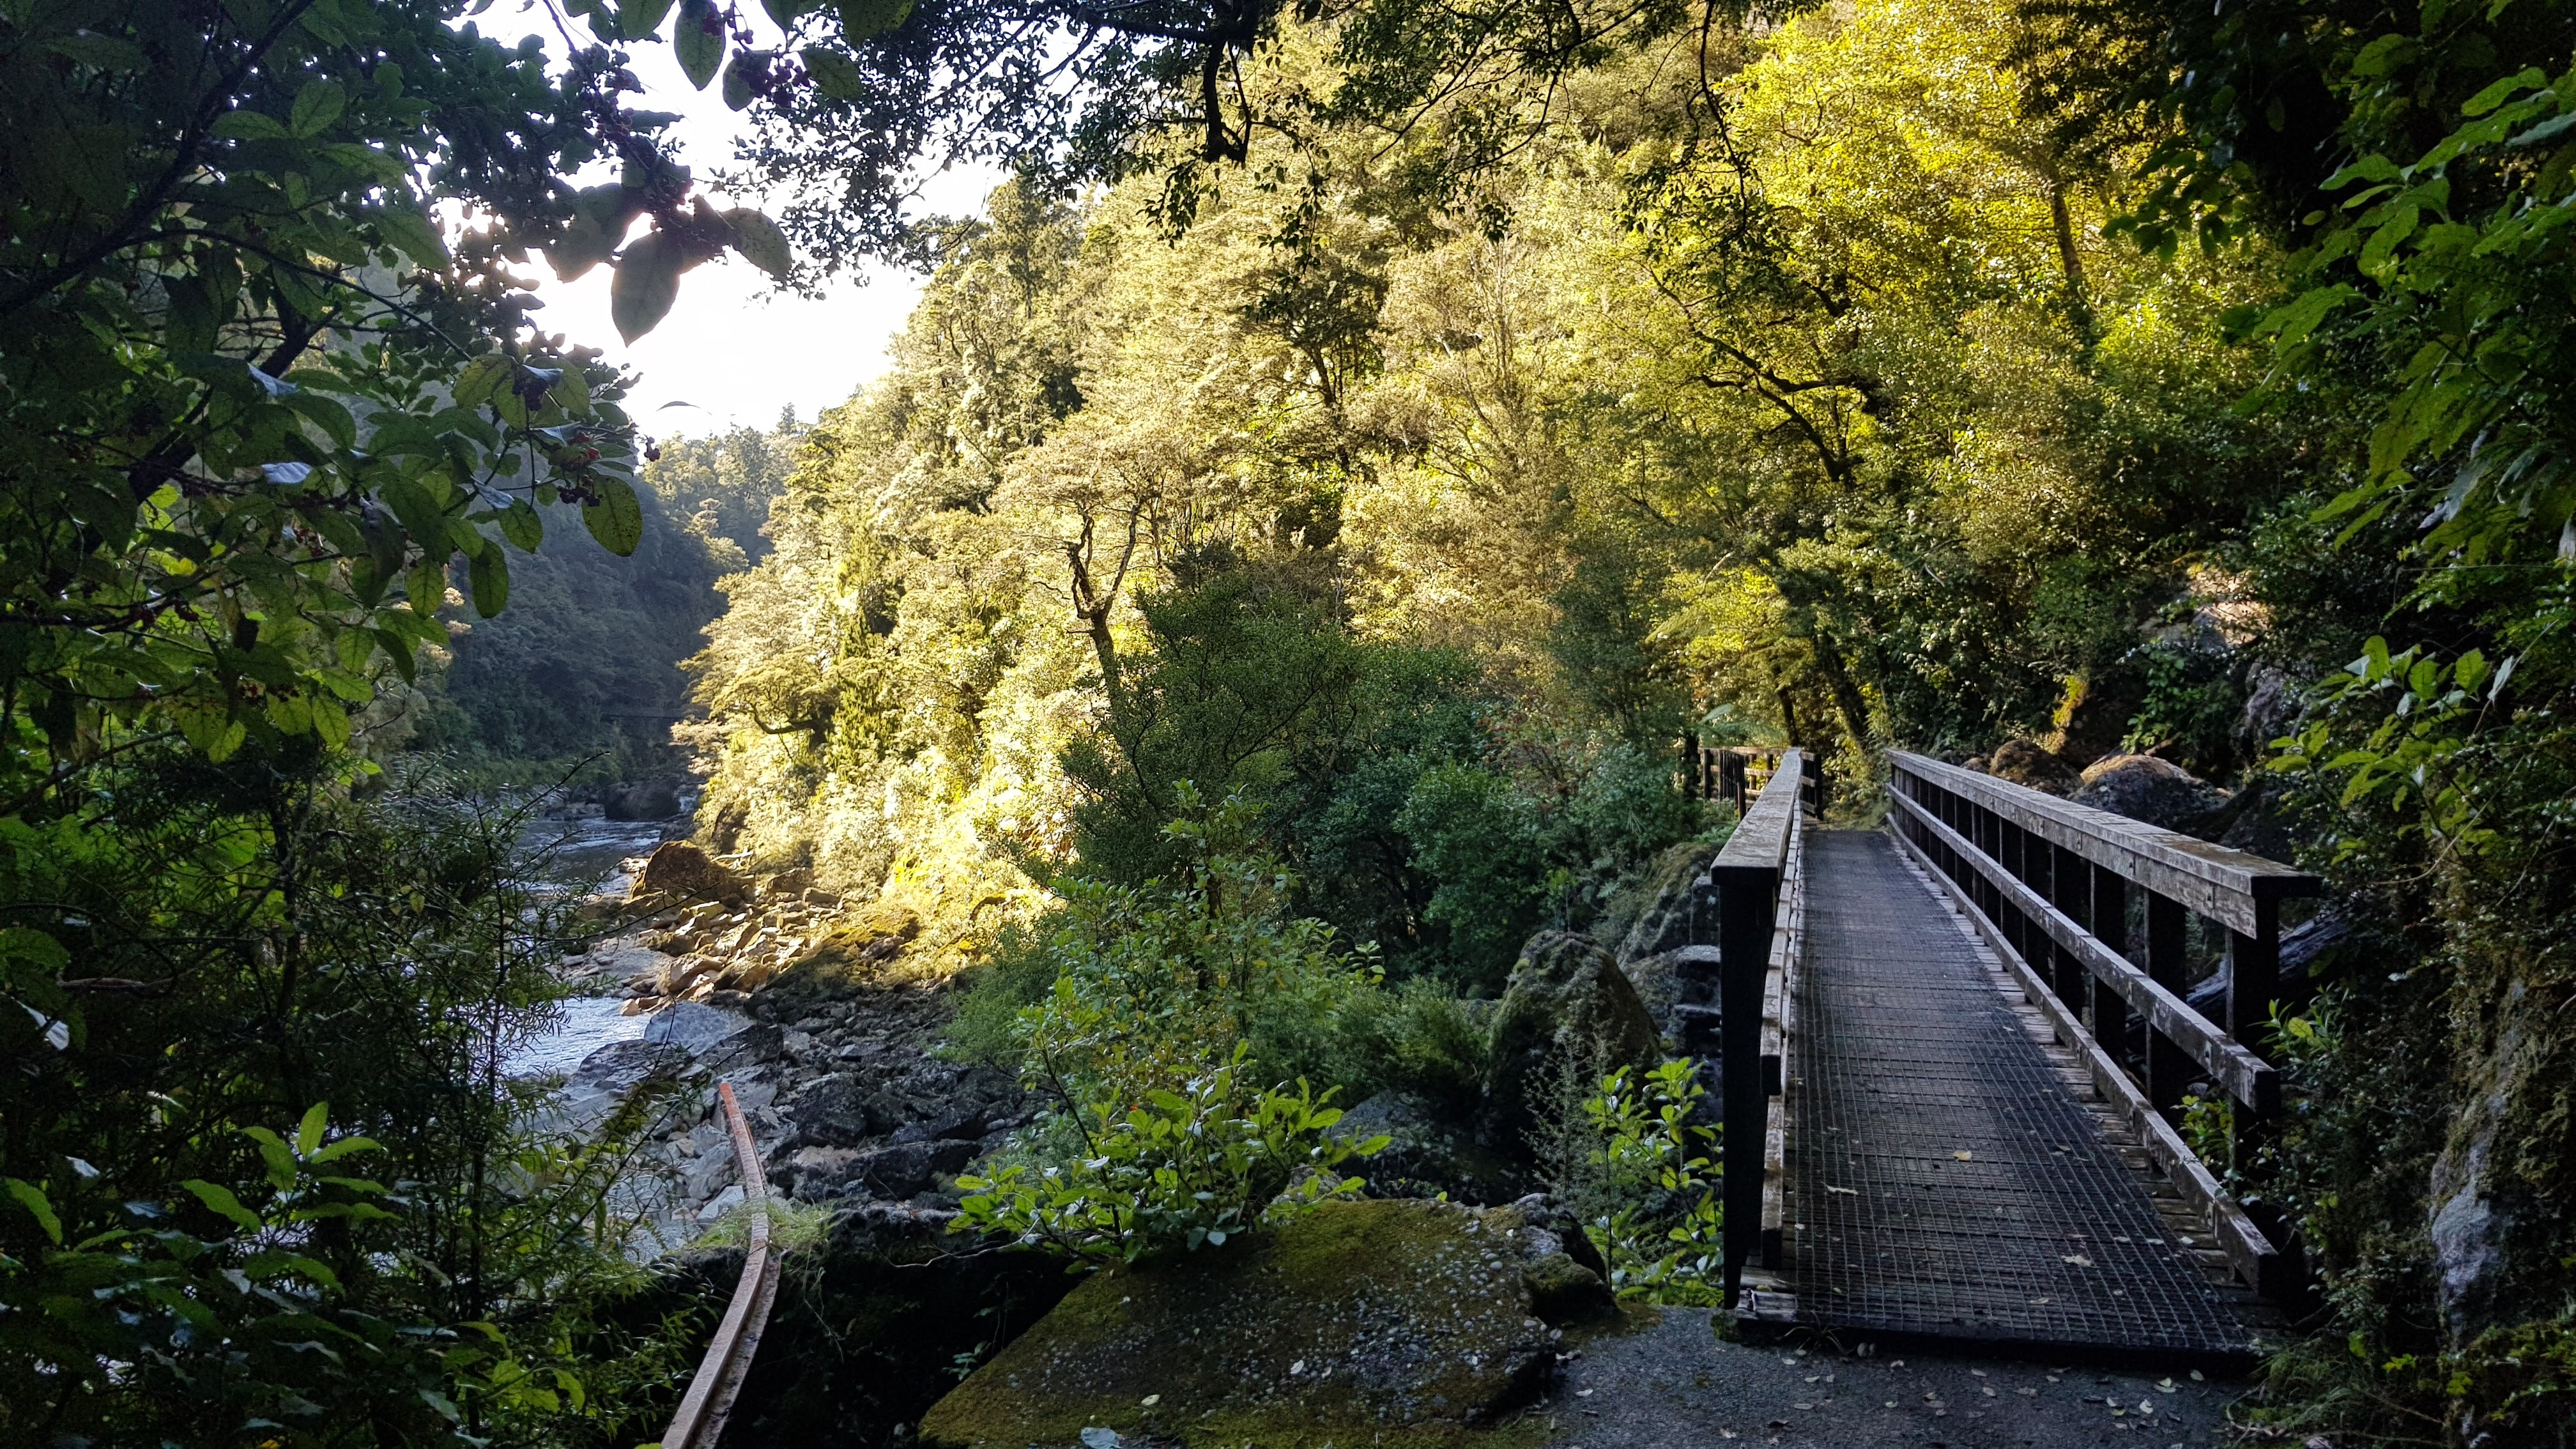 One of the bridges on the Charming Creek Walkway